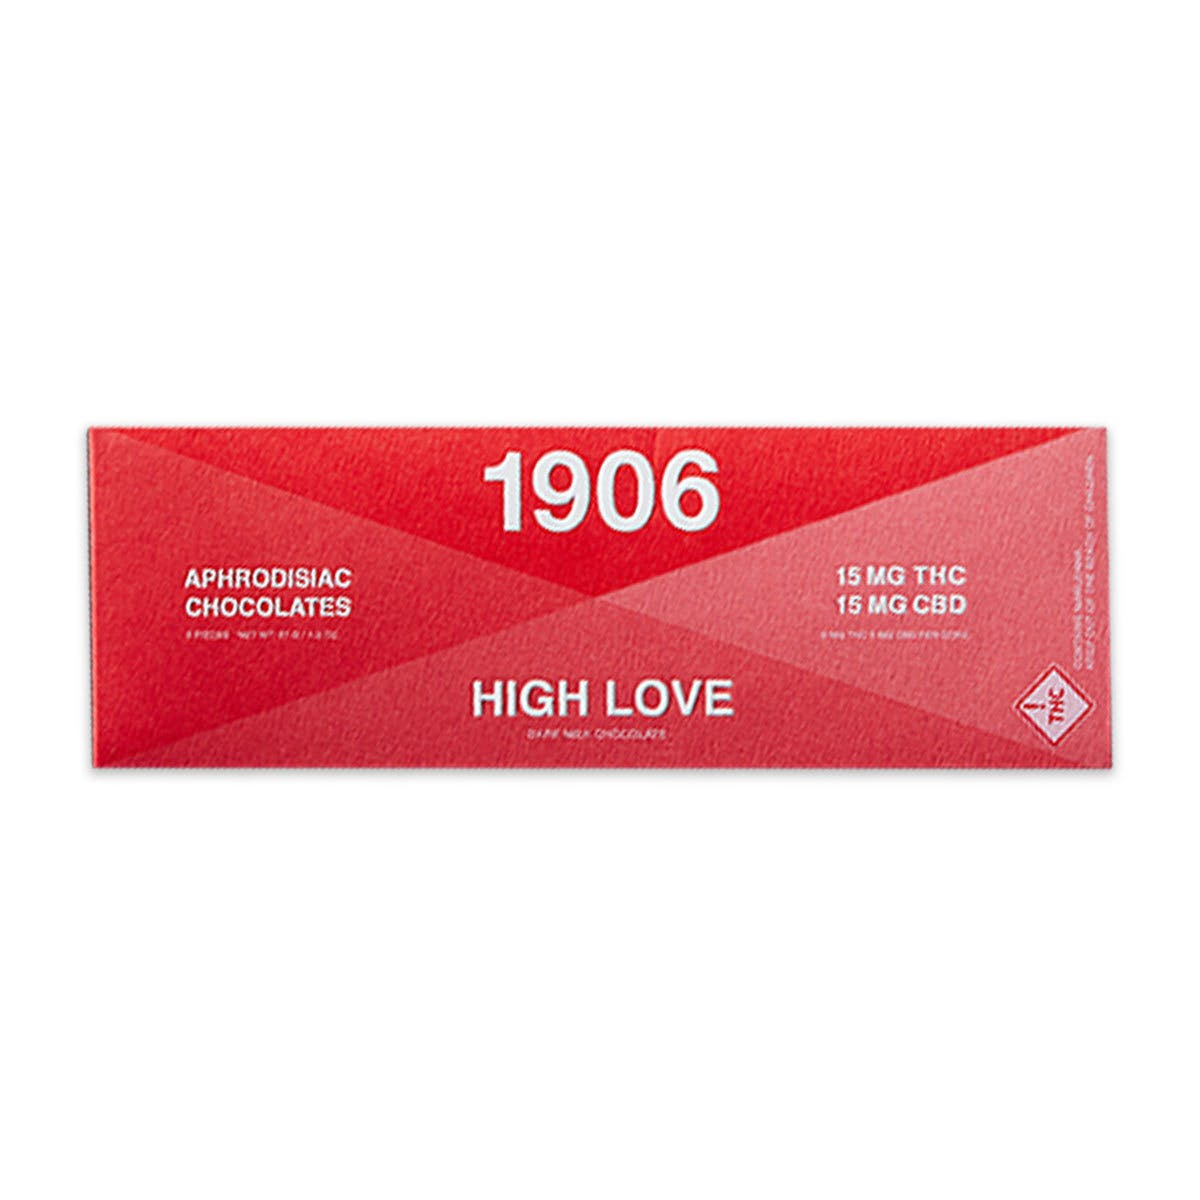 HIGH LOVE 5mg THC/5mg CBD